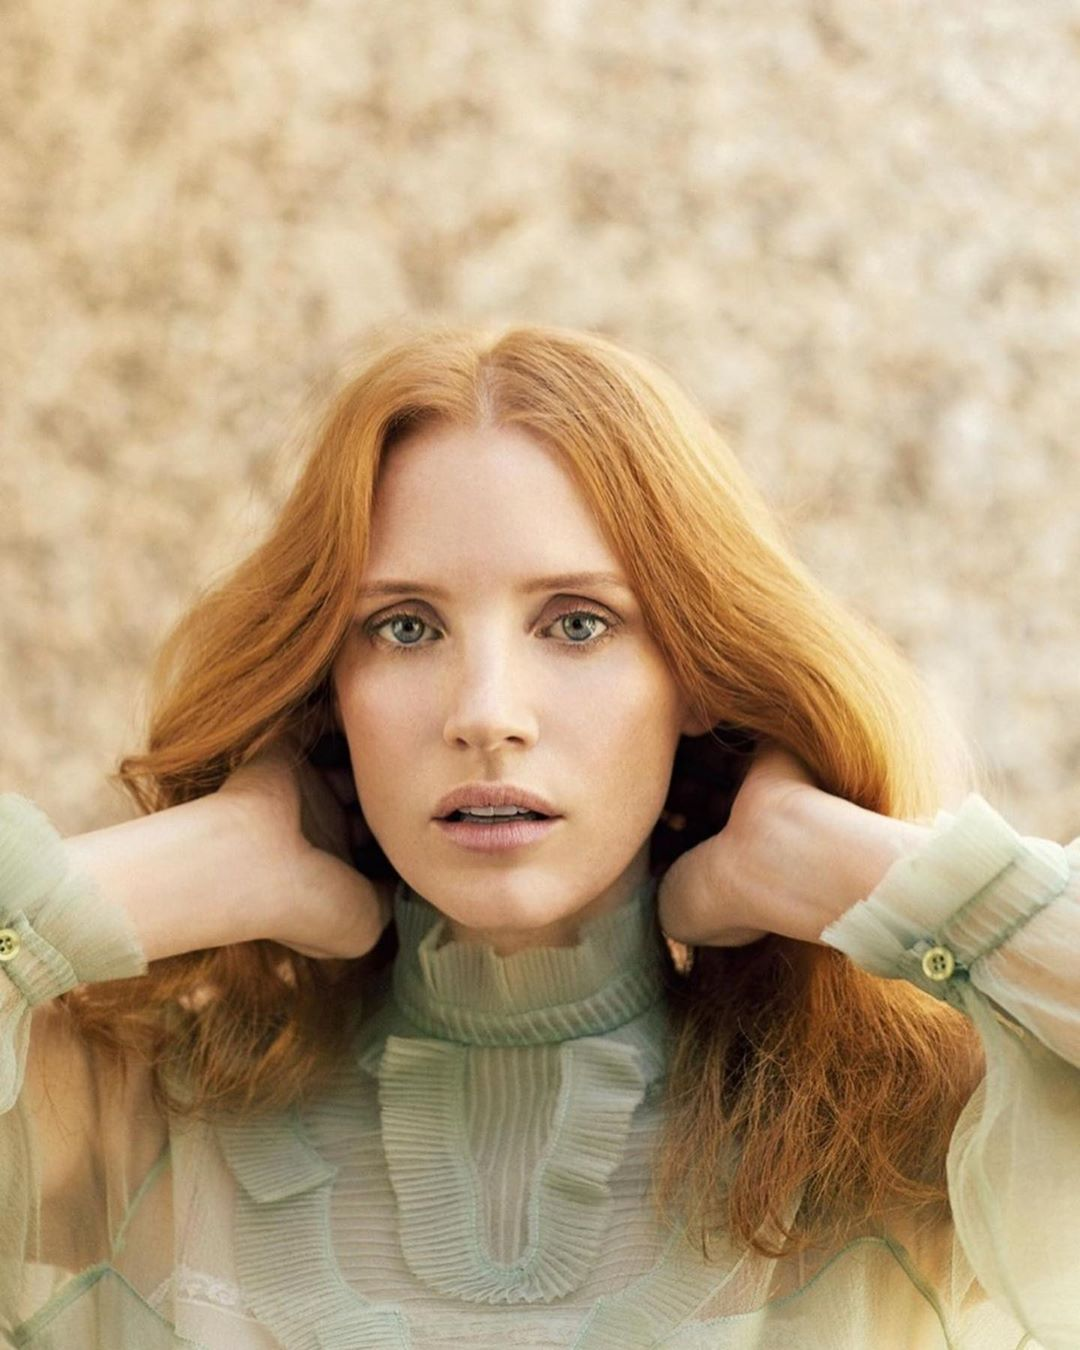 Jessica Chastain Hollywood actress 28